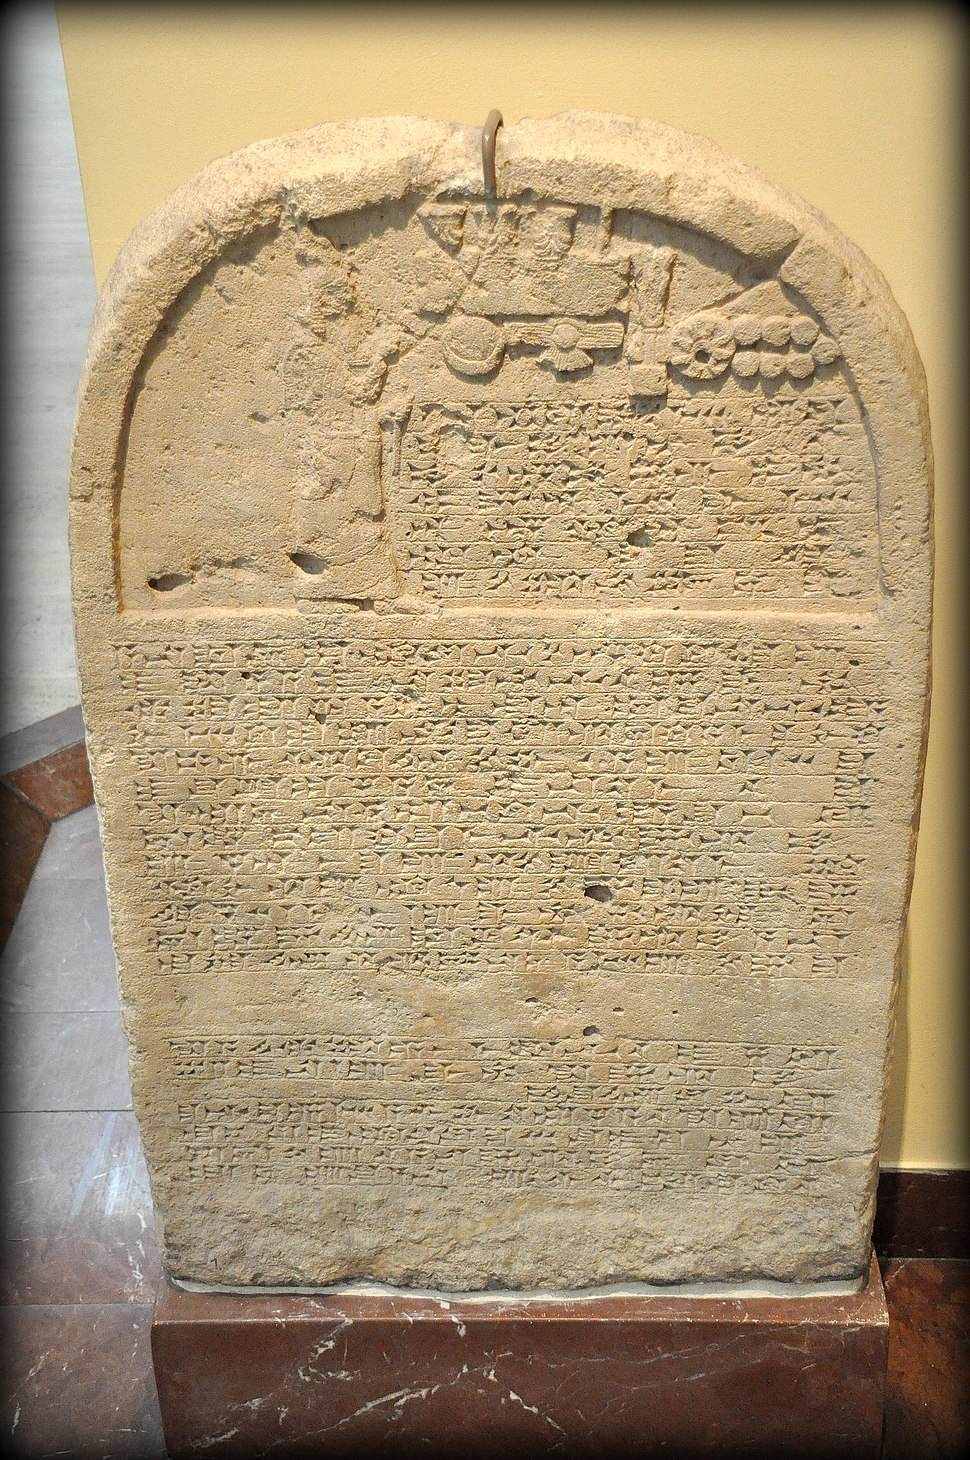 Limestone stele of king Sennacherib from Nineveh. Ancient Orient Museum, Istanbul Archeological Museums, Turkey